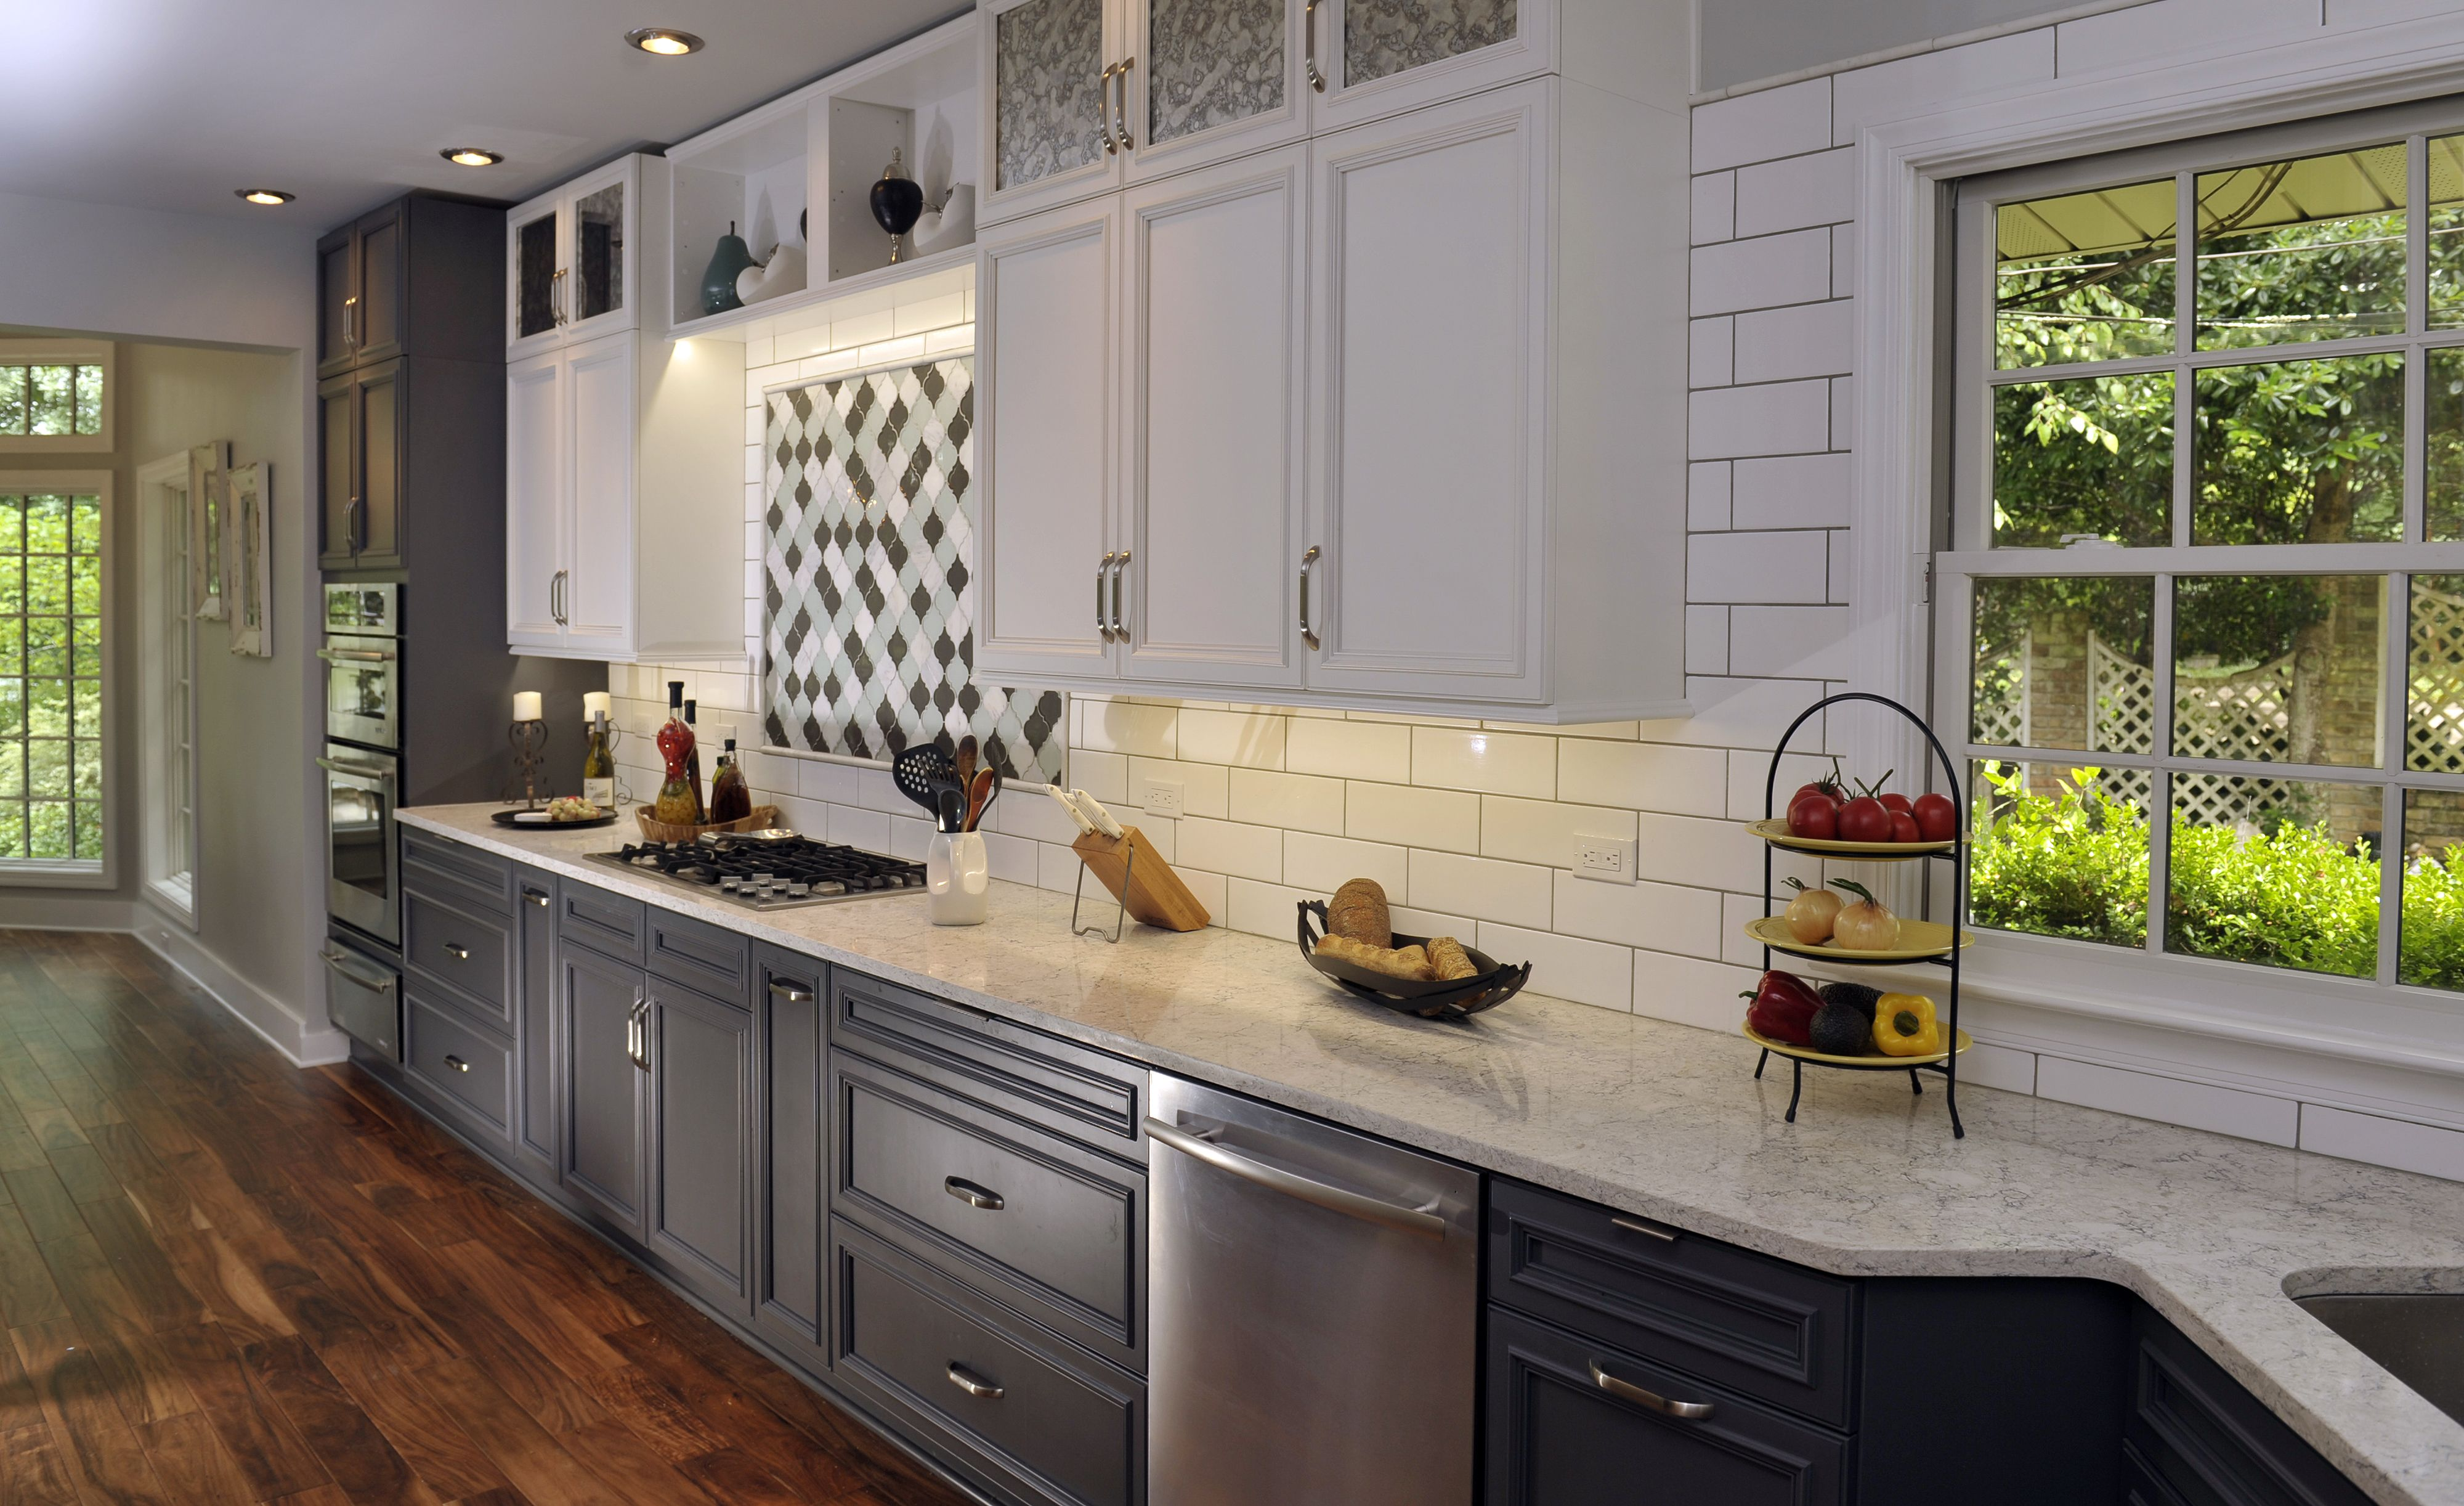 beautiful kitchen designed by kw cowles design coutnertops in lg rh pinterest com